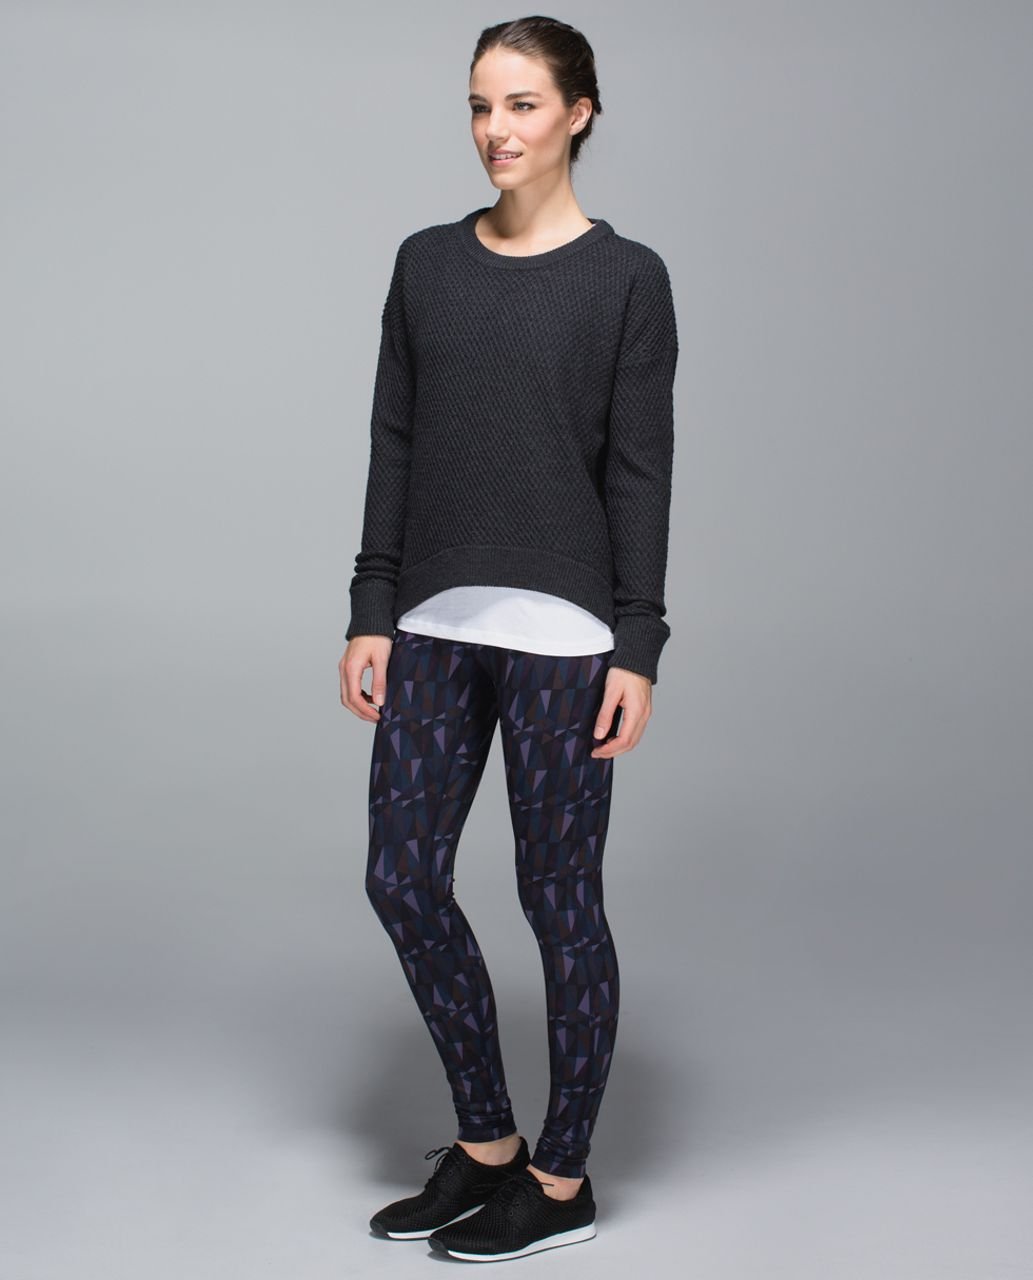 Lululemon Wunder Under Pant *Full-On Luon - Stained Glass Love Nightfall Black